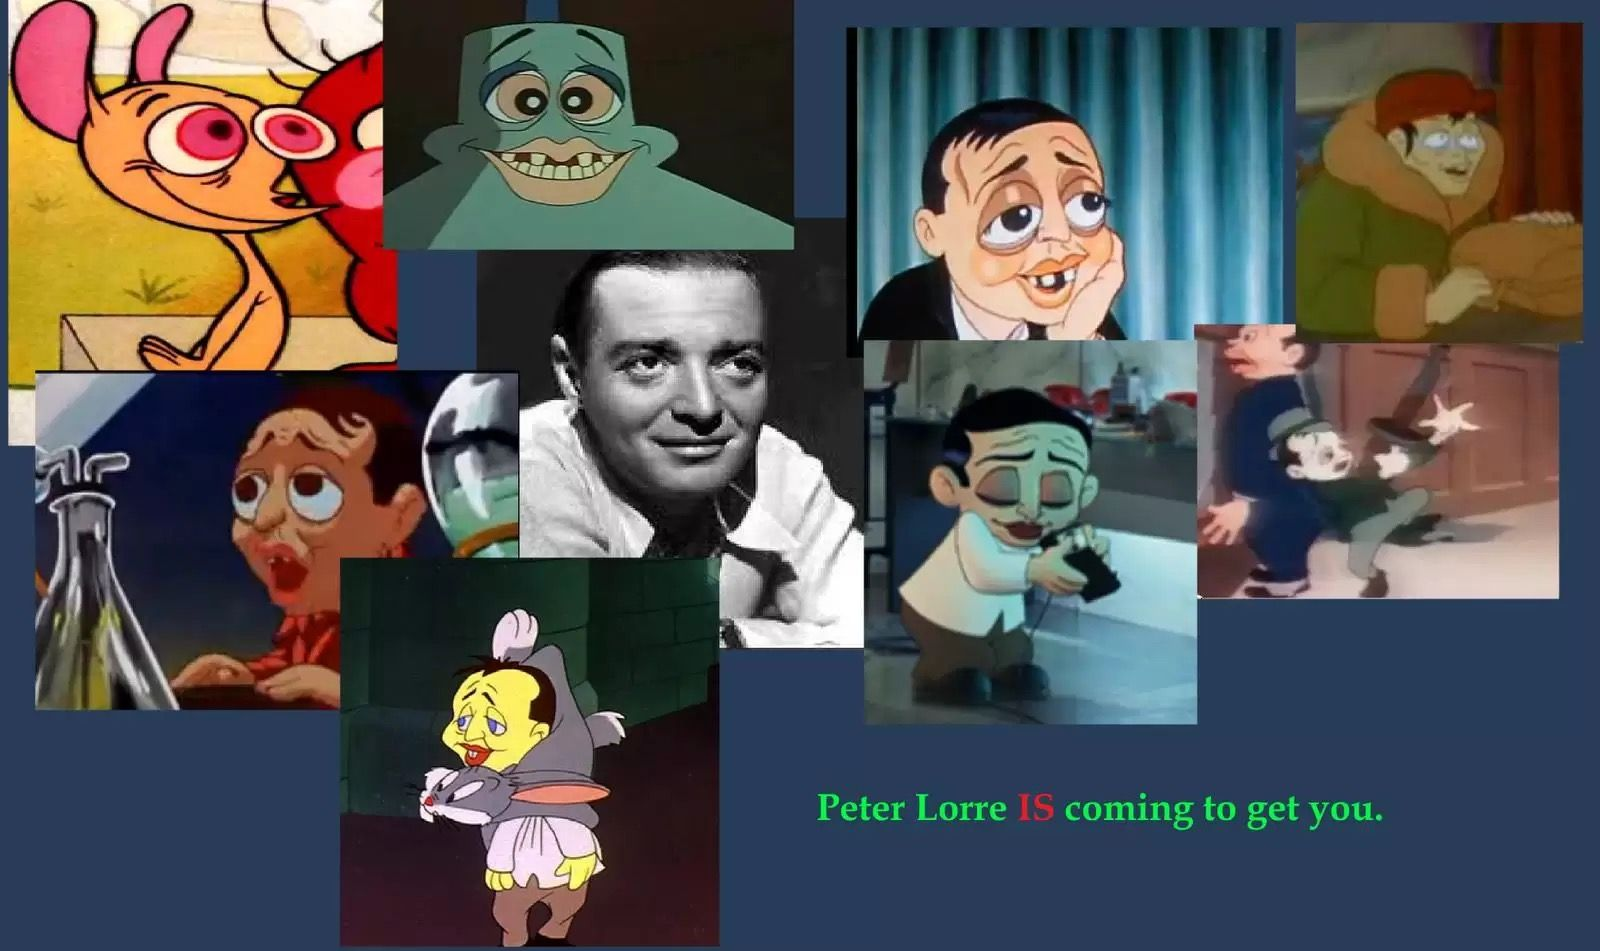 Pin by Matthew Hahn on THE ANIMATED PETER LORRE Peter